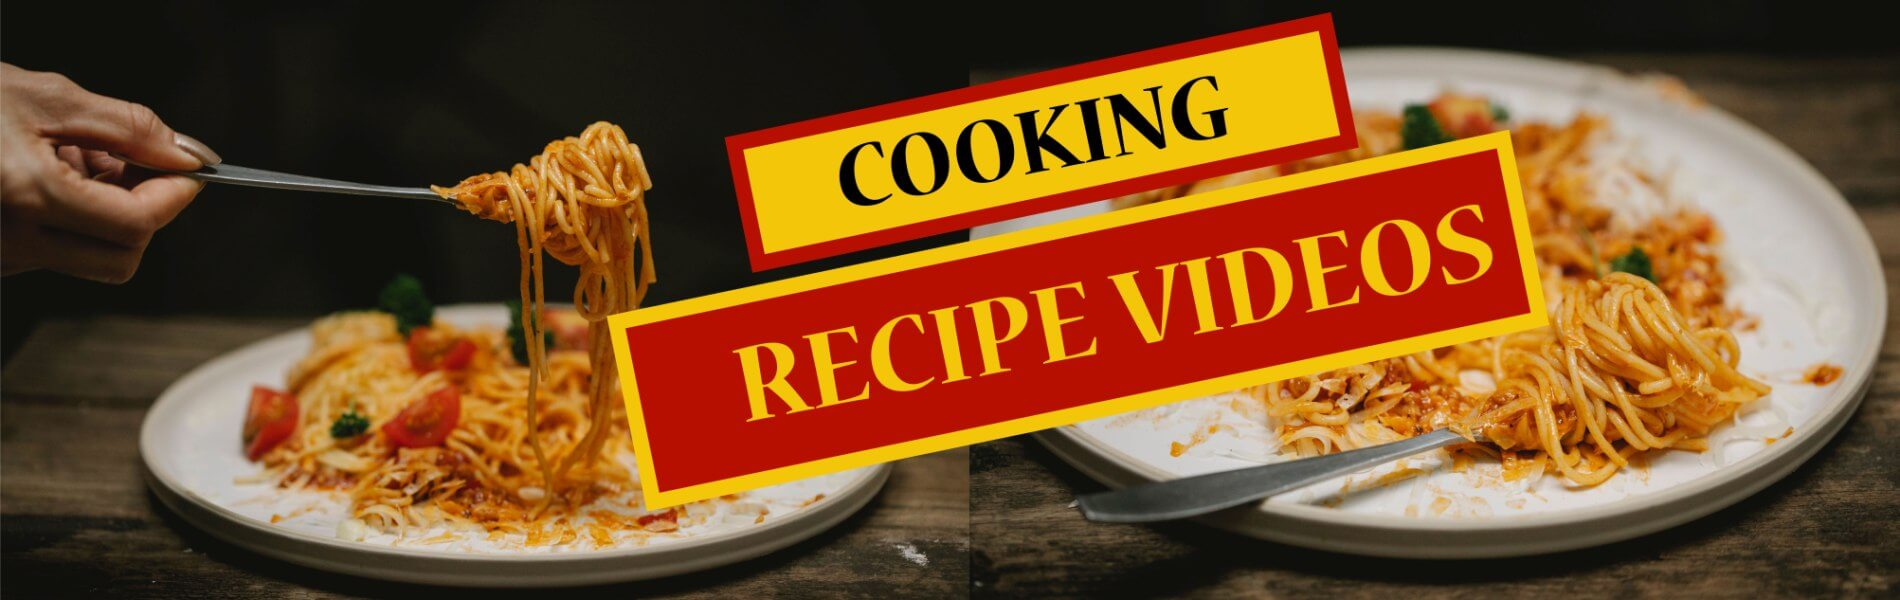 Free Cooking Recipes VGideo Download MP4